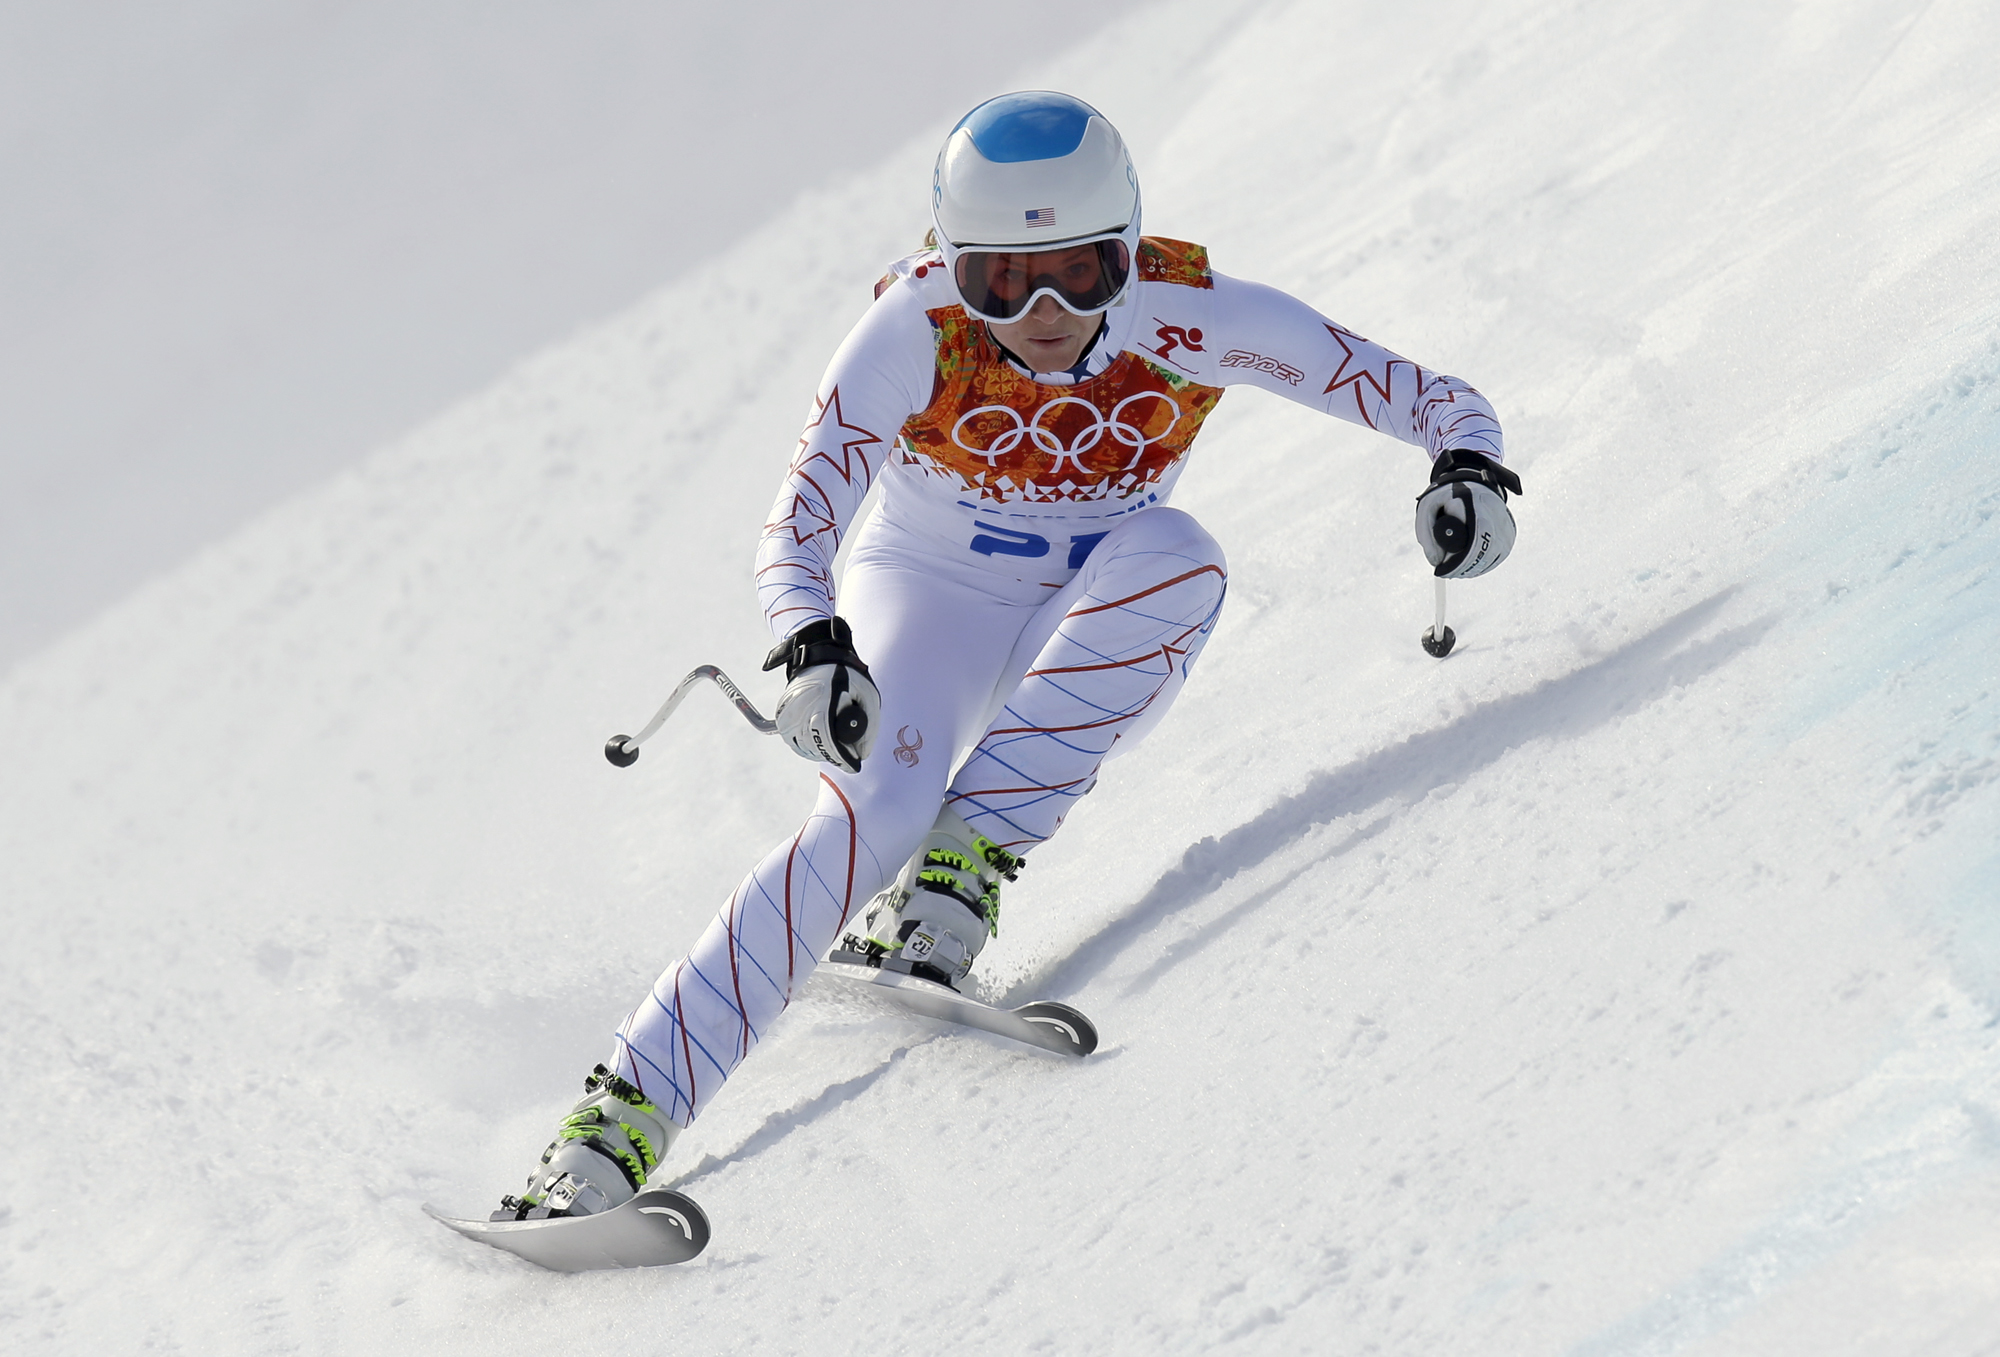 United States' Julia Mancuso makes a turn in the downhill portion of the women's supercombined at the Sochi 2014 Winter Olympics, Monday, Feb. 10, 2014, in Krasnaya Polyana, Russia. (AP Photo/Luca Bruno)